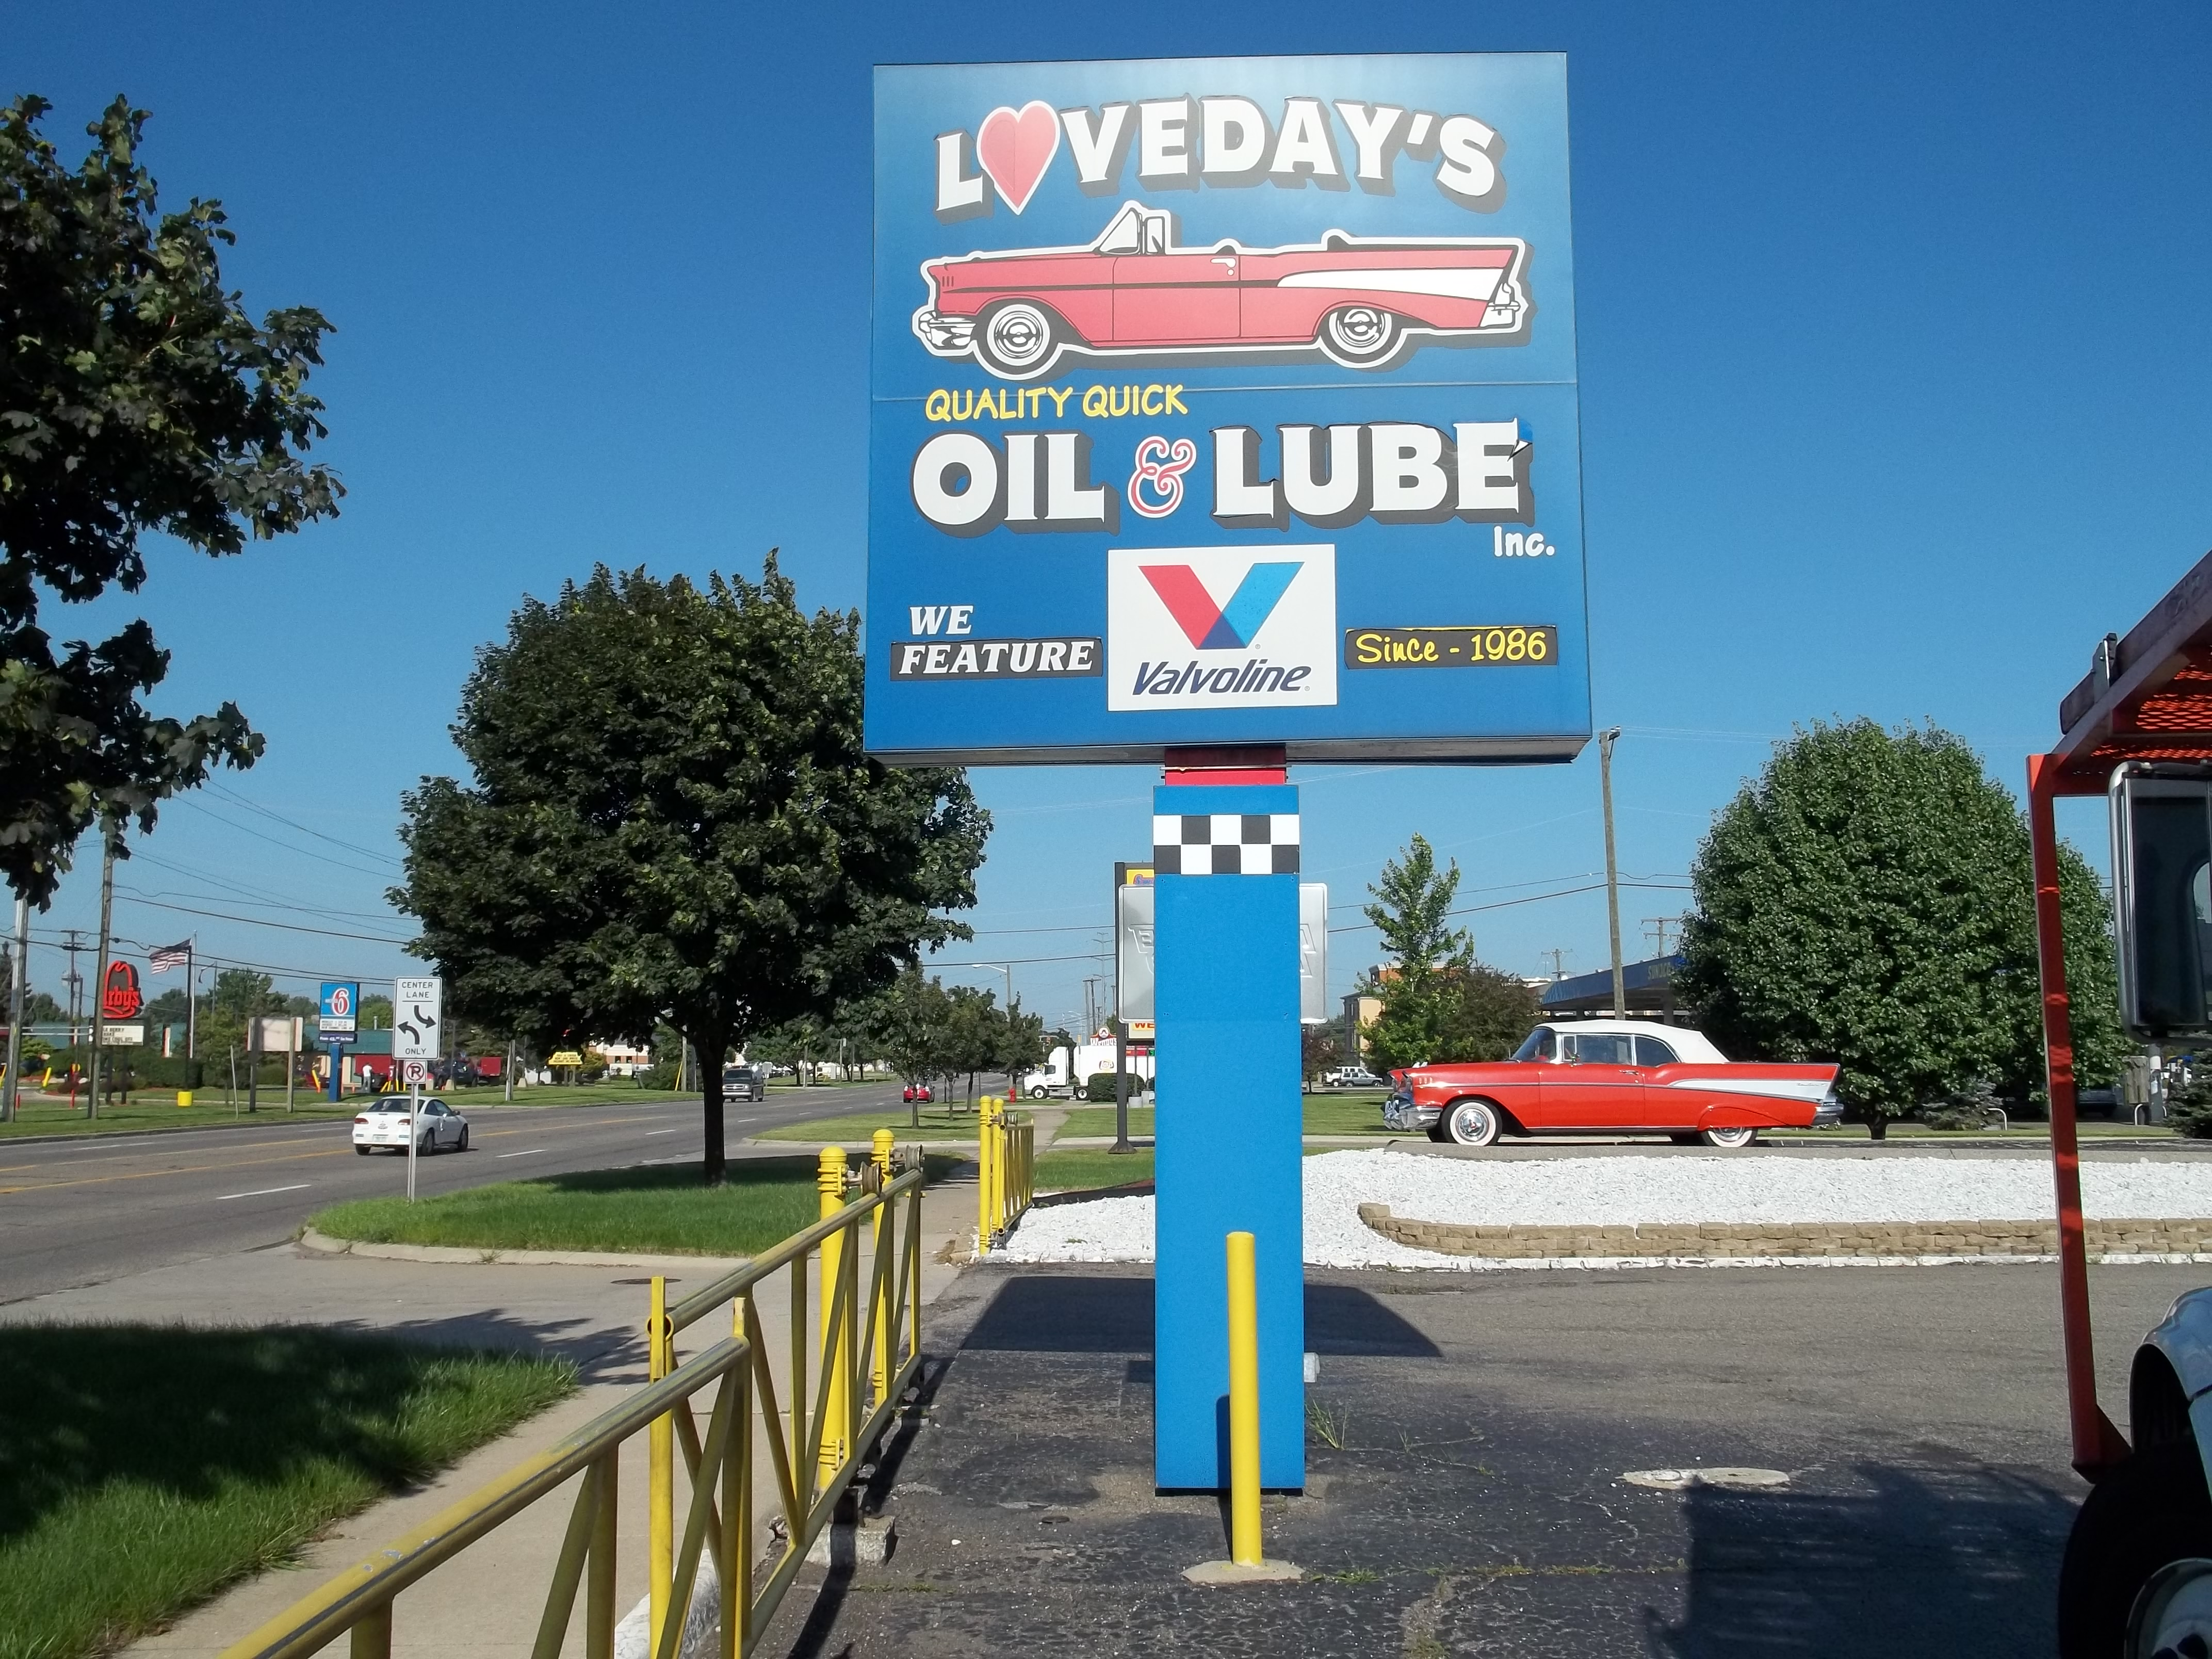 Lovedays Oil Pole Sign